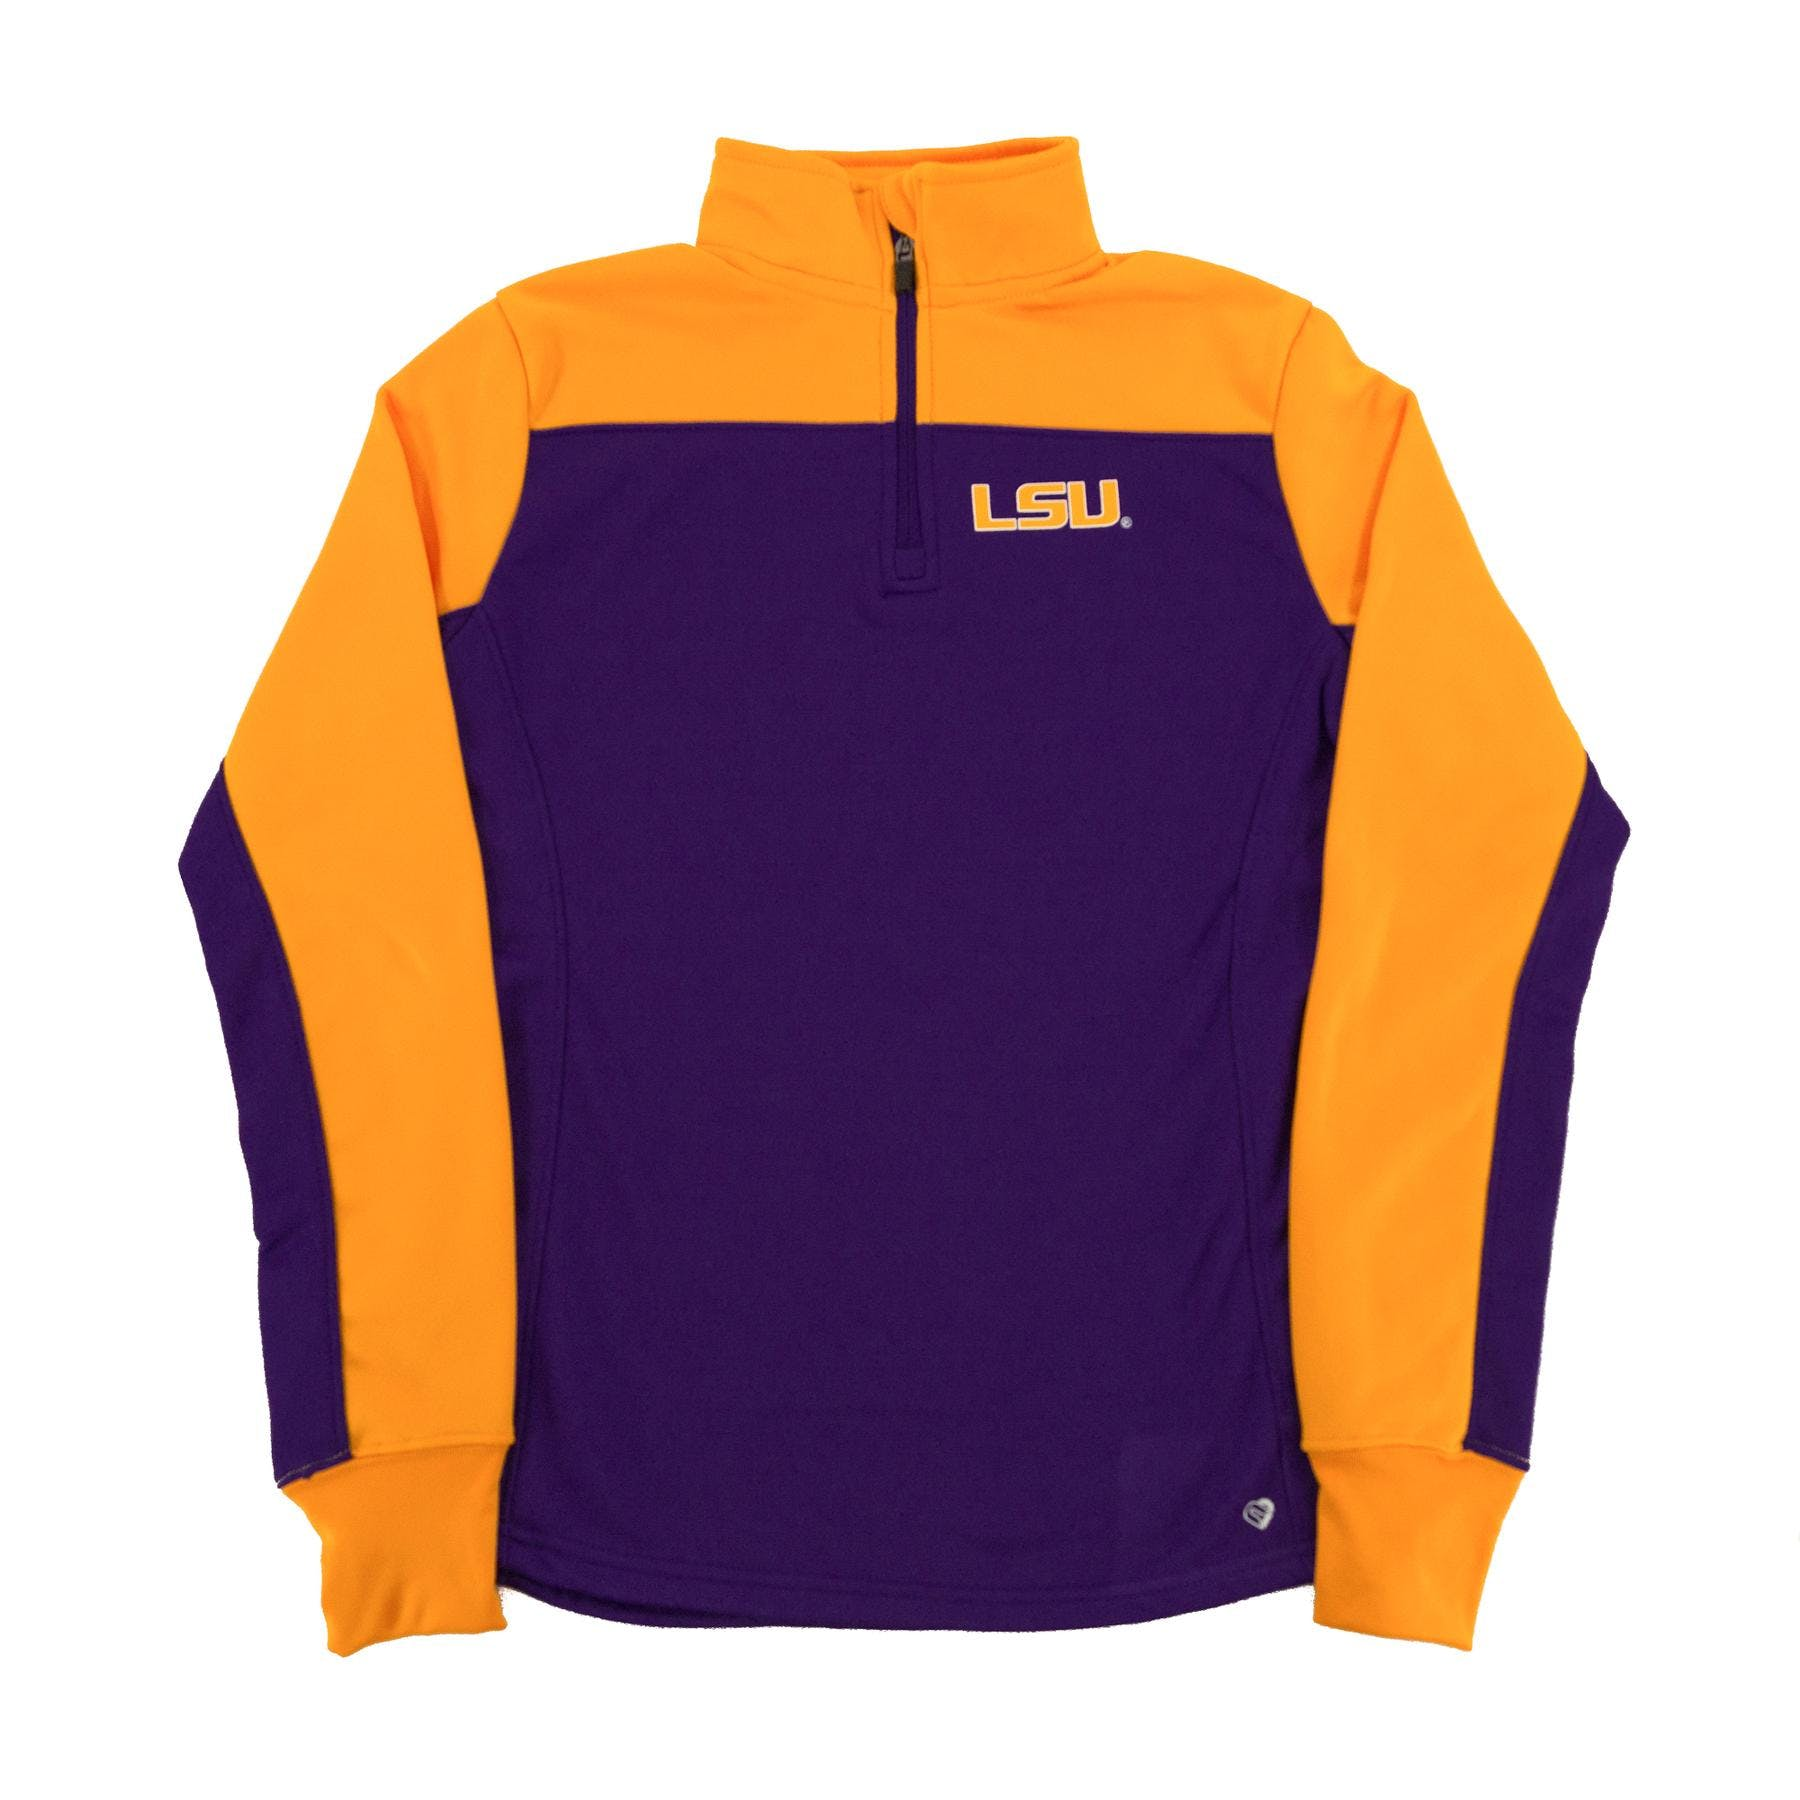 LSU Tigers Colosseum Yellow Joust 1/4 Zip Performance